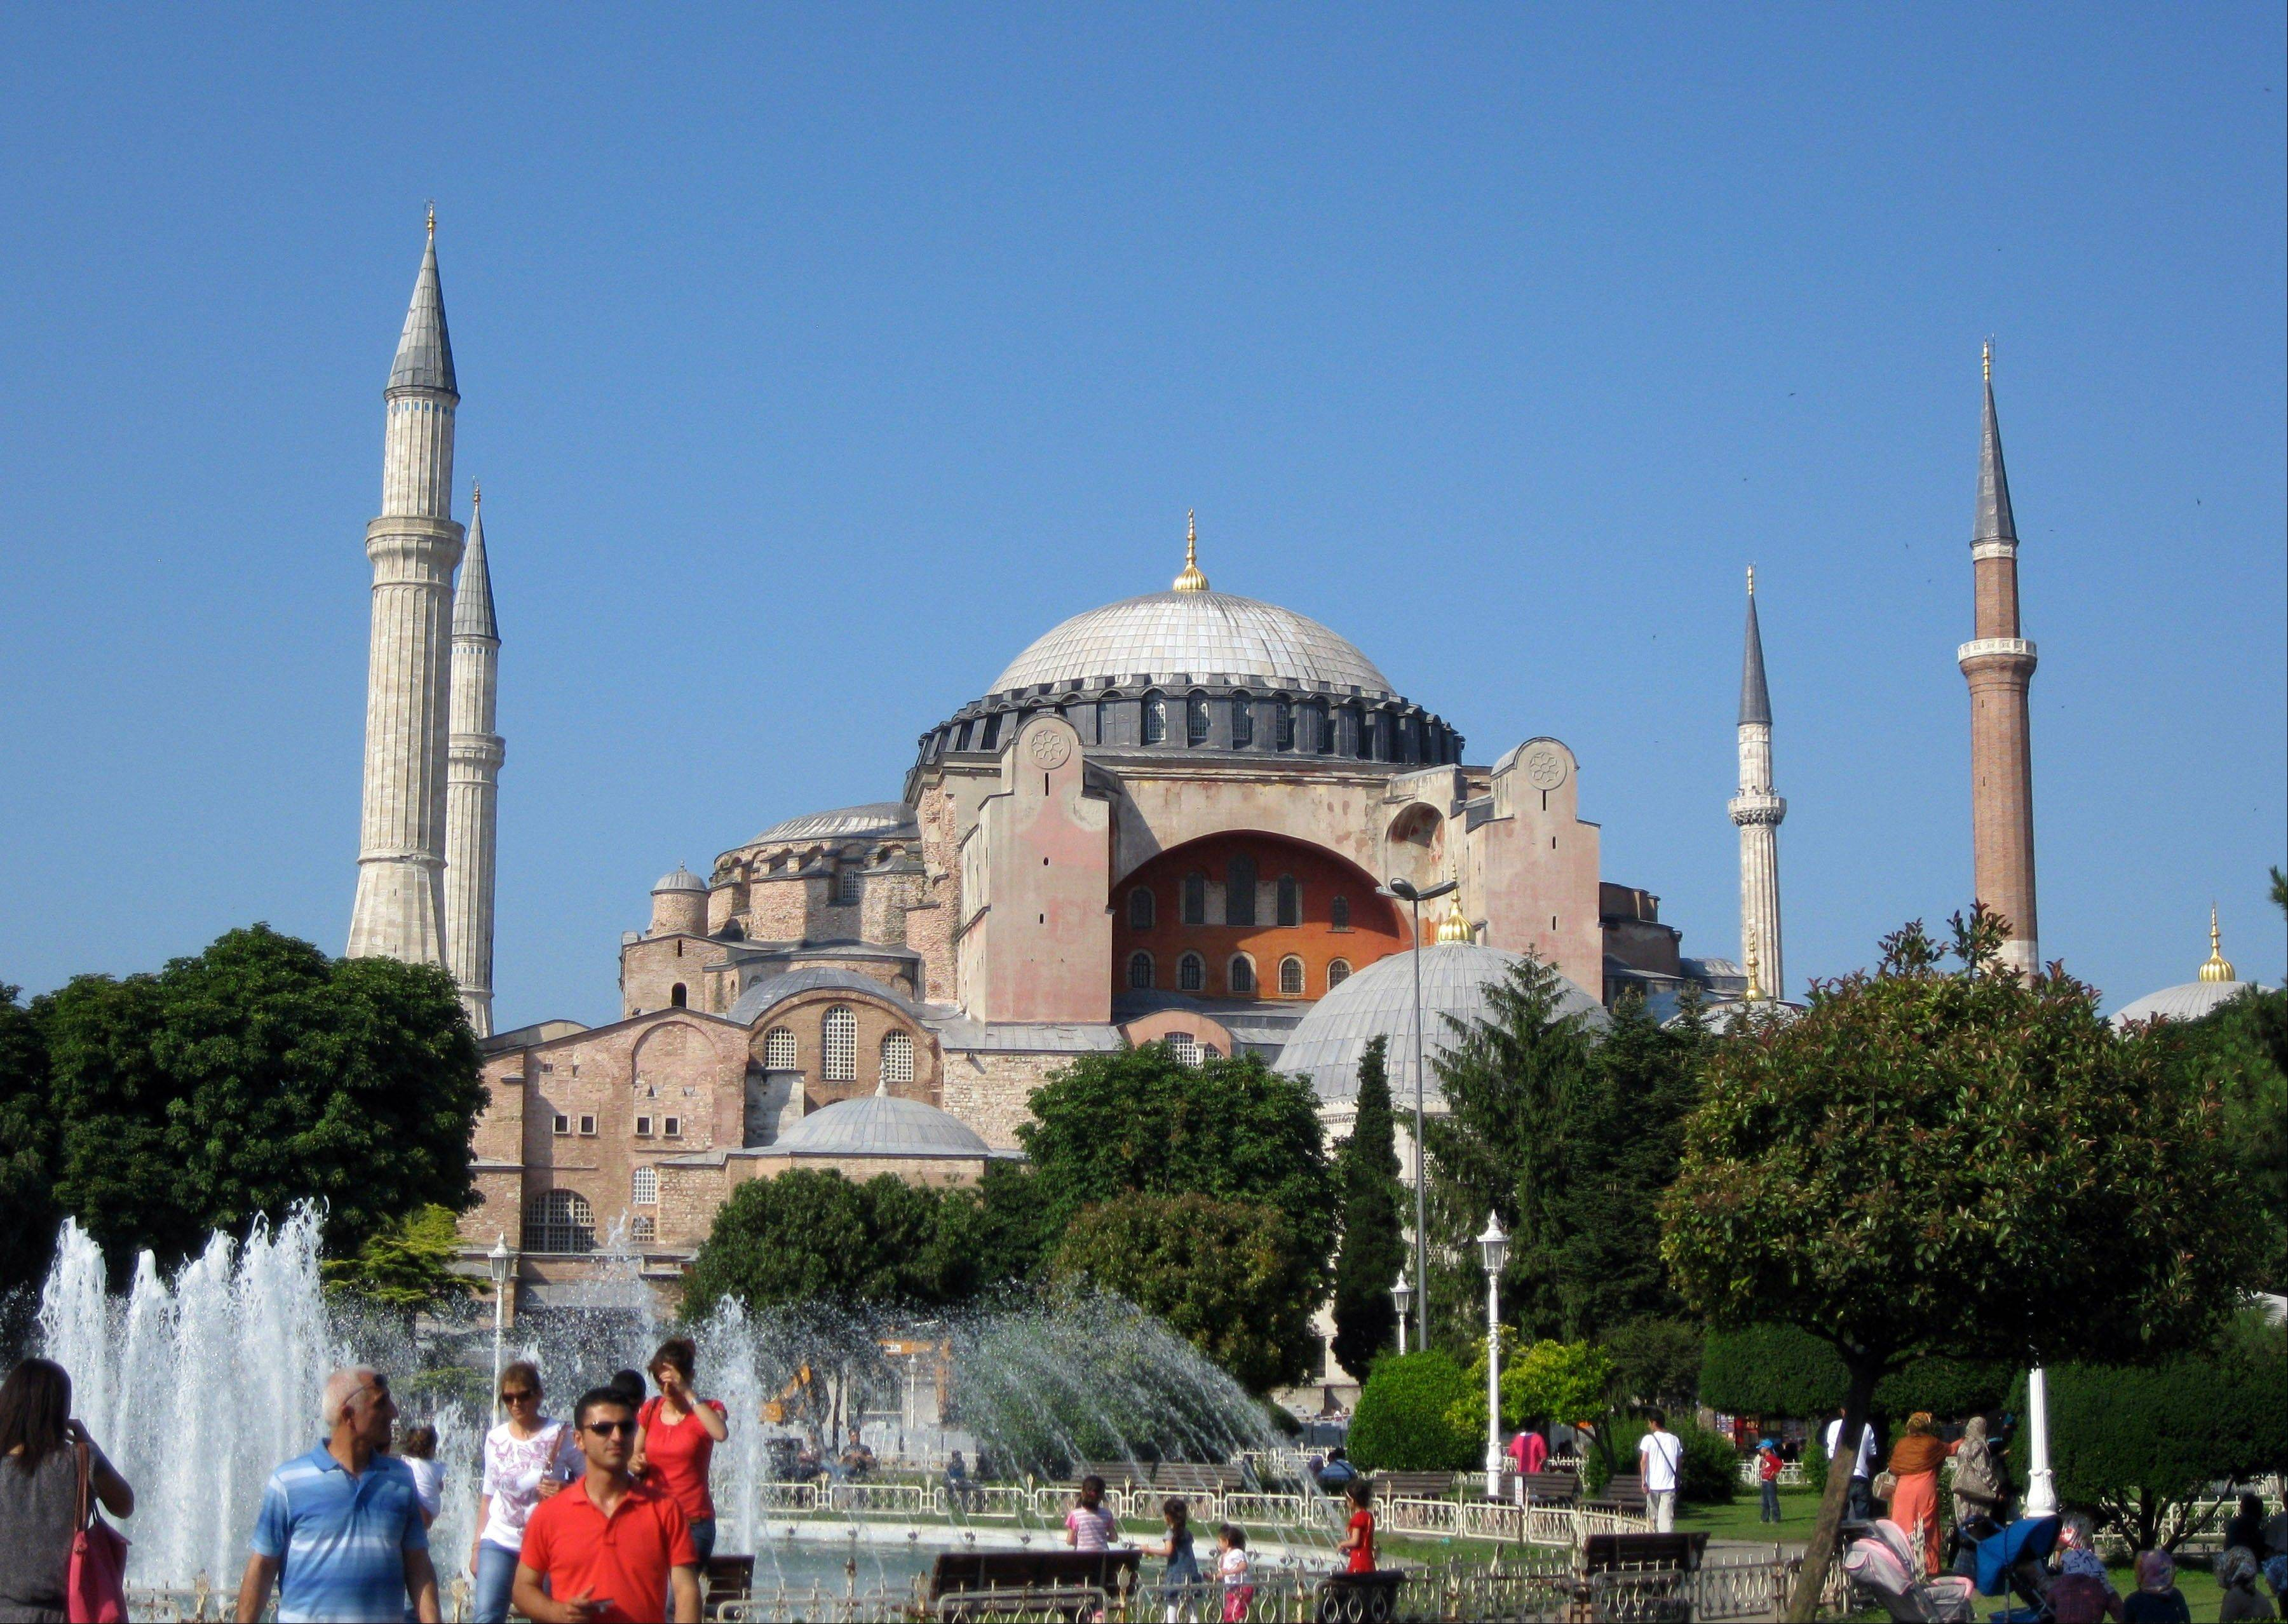 Haghia Sophia, the masterpiece of Byzantine architecture topped by a huge dome, has dominated old Istanbul's skyline since its construction in the 6th century.